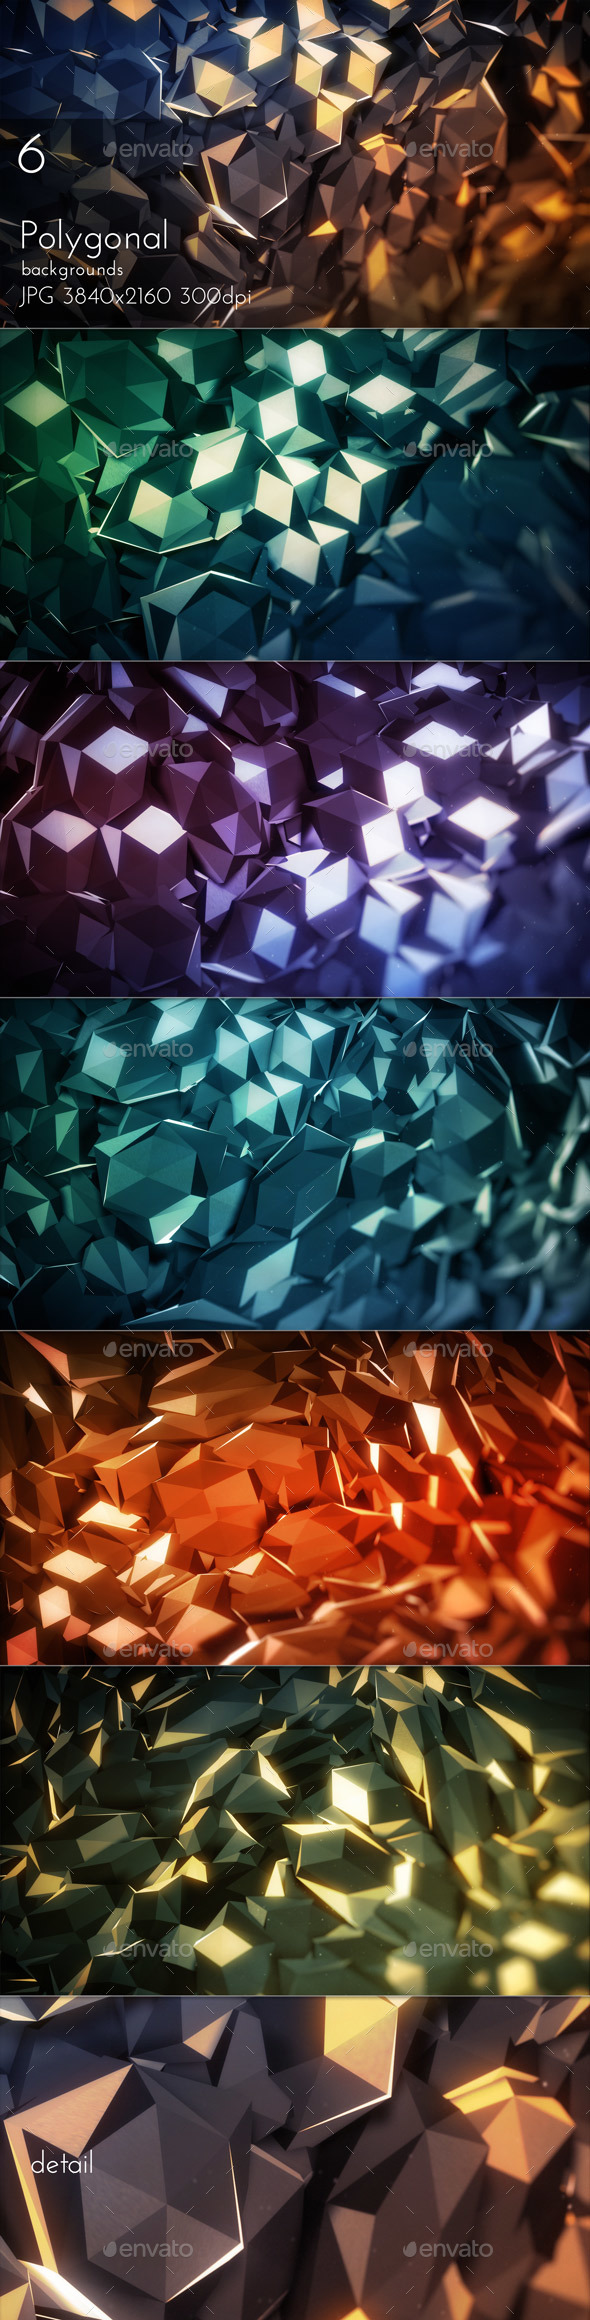 Polygonal Background